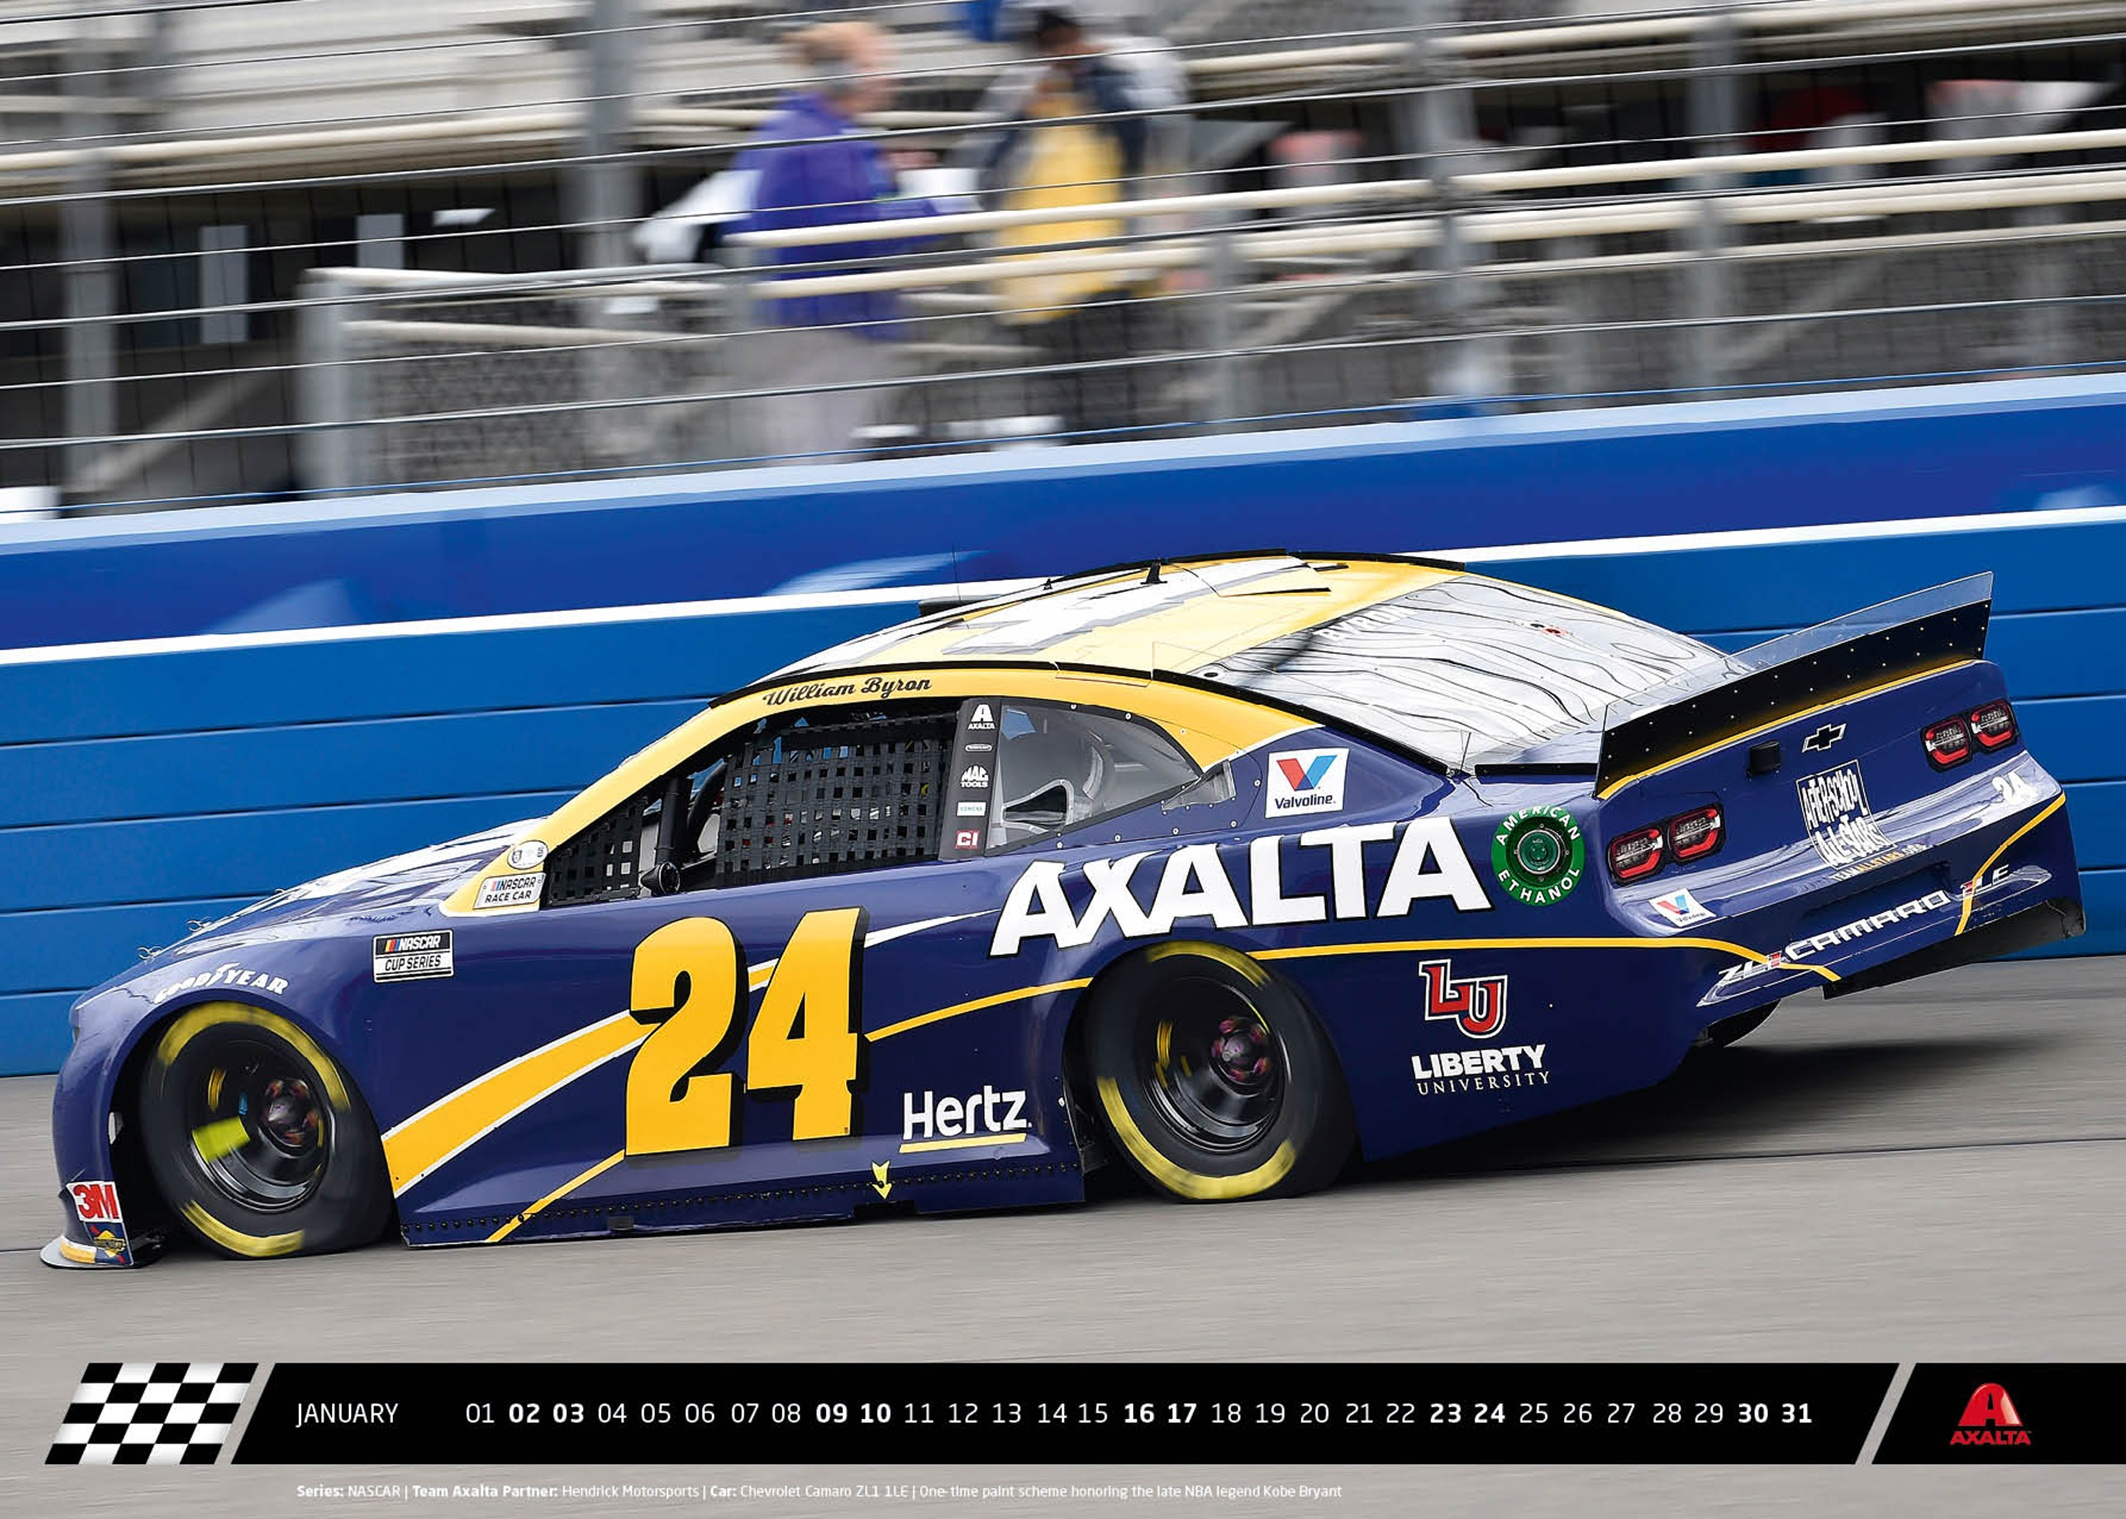 Axalta_Brilliantly_Fast_2021_Calendar January